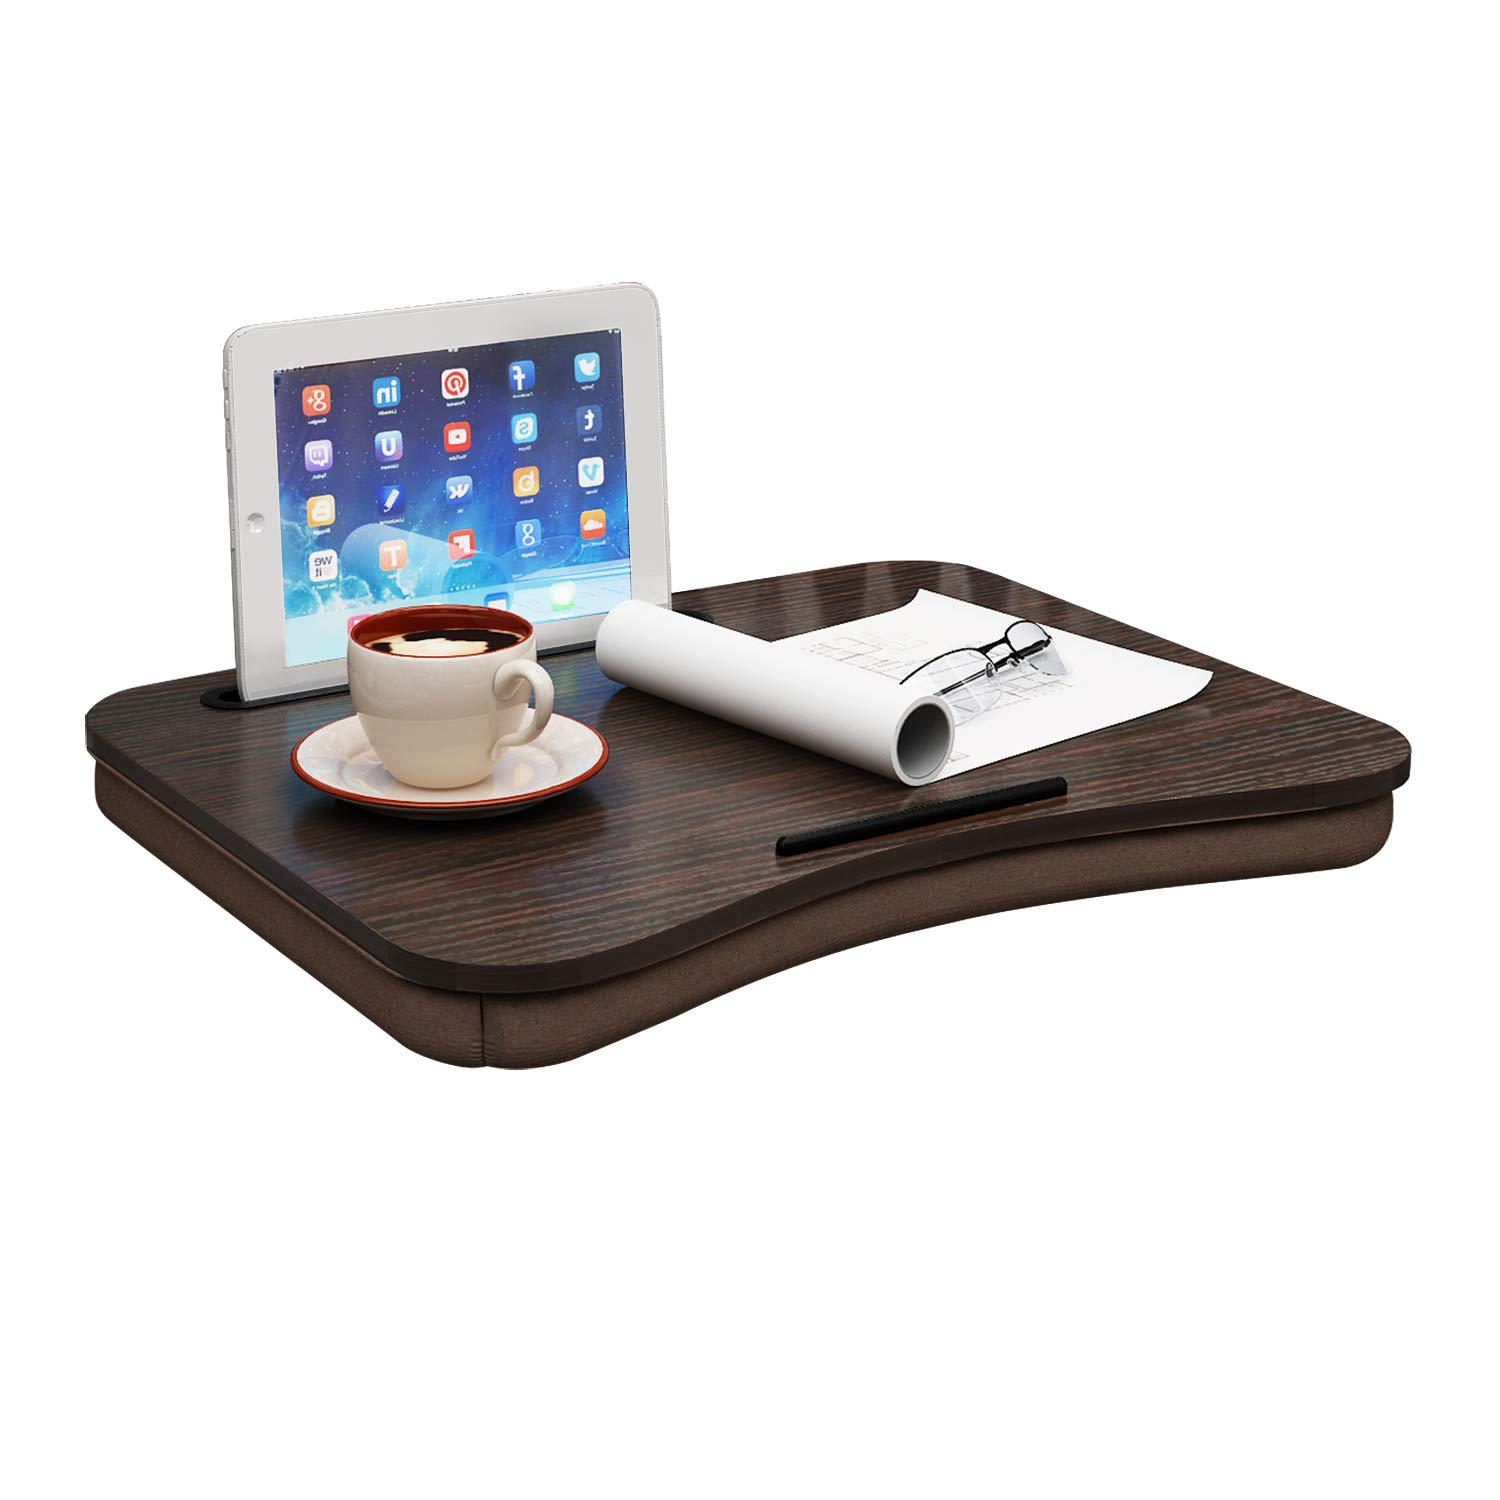 Jeroal Portable Lap Desk For Laptop Wood Lap Pillow Tray With Tablet Slot Fits Up To 15 Laptop And 9 7 Tablet